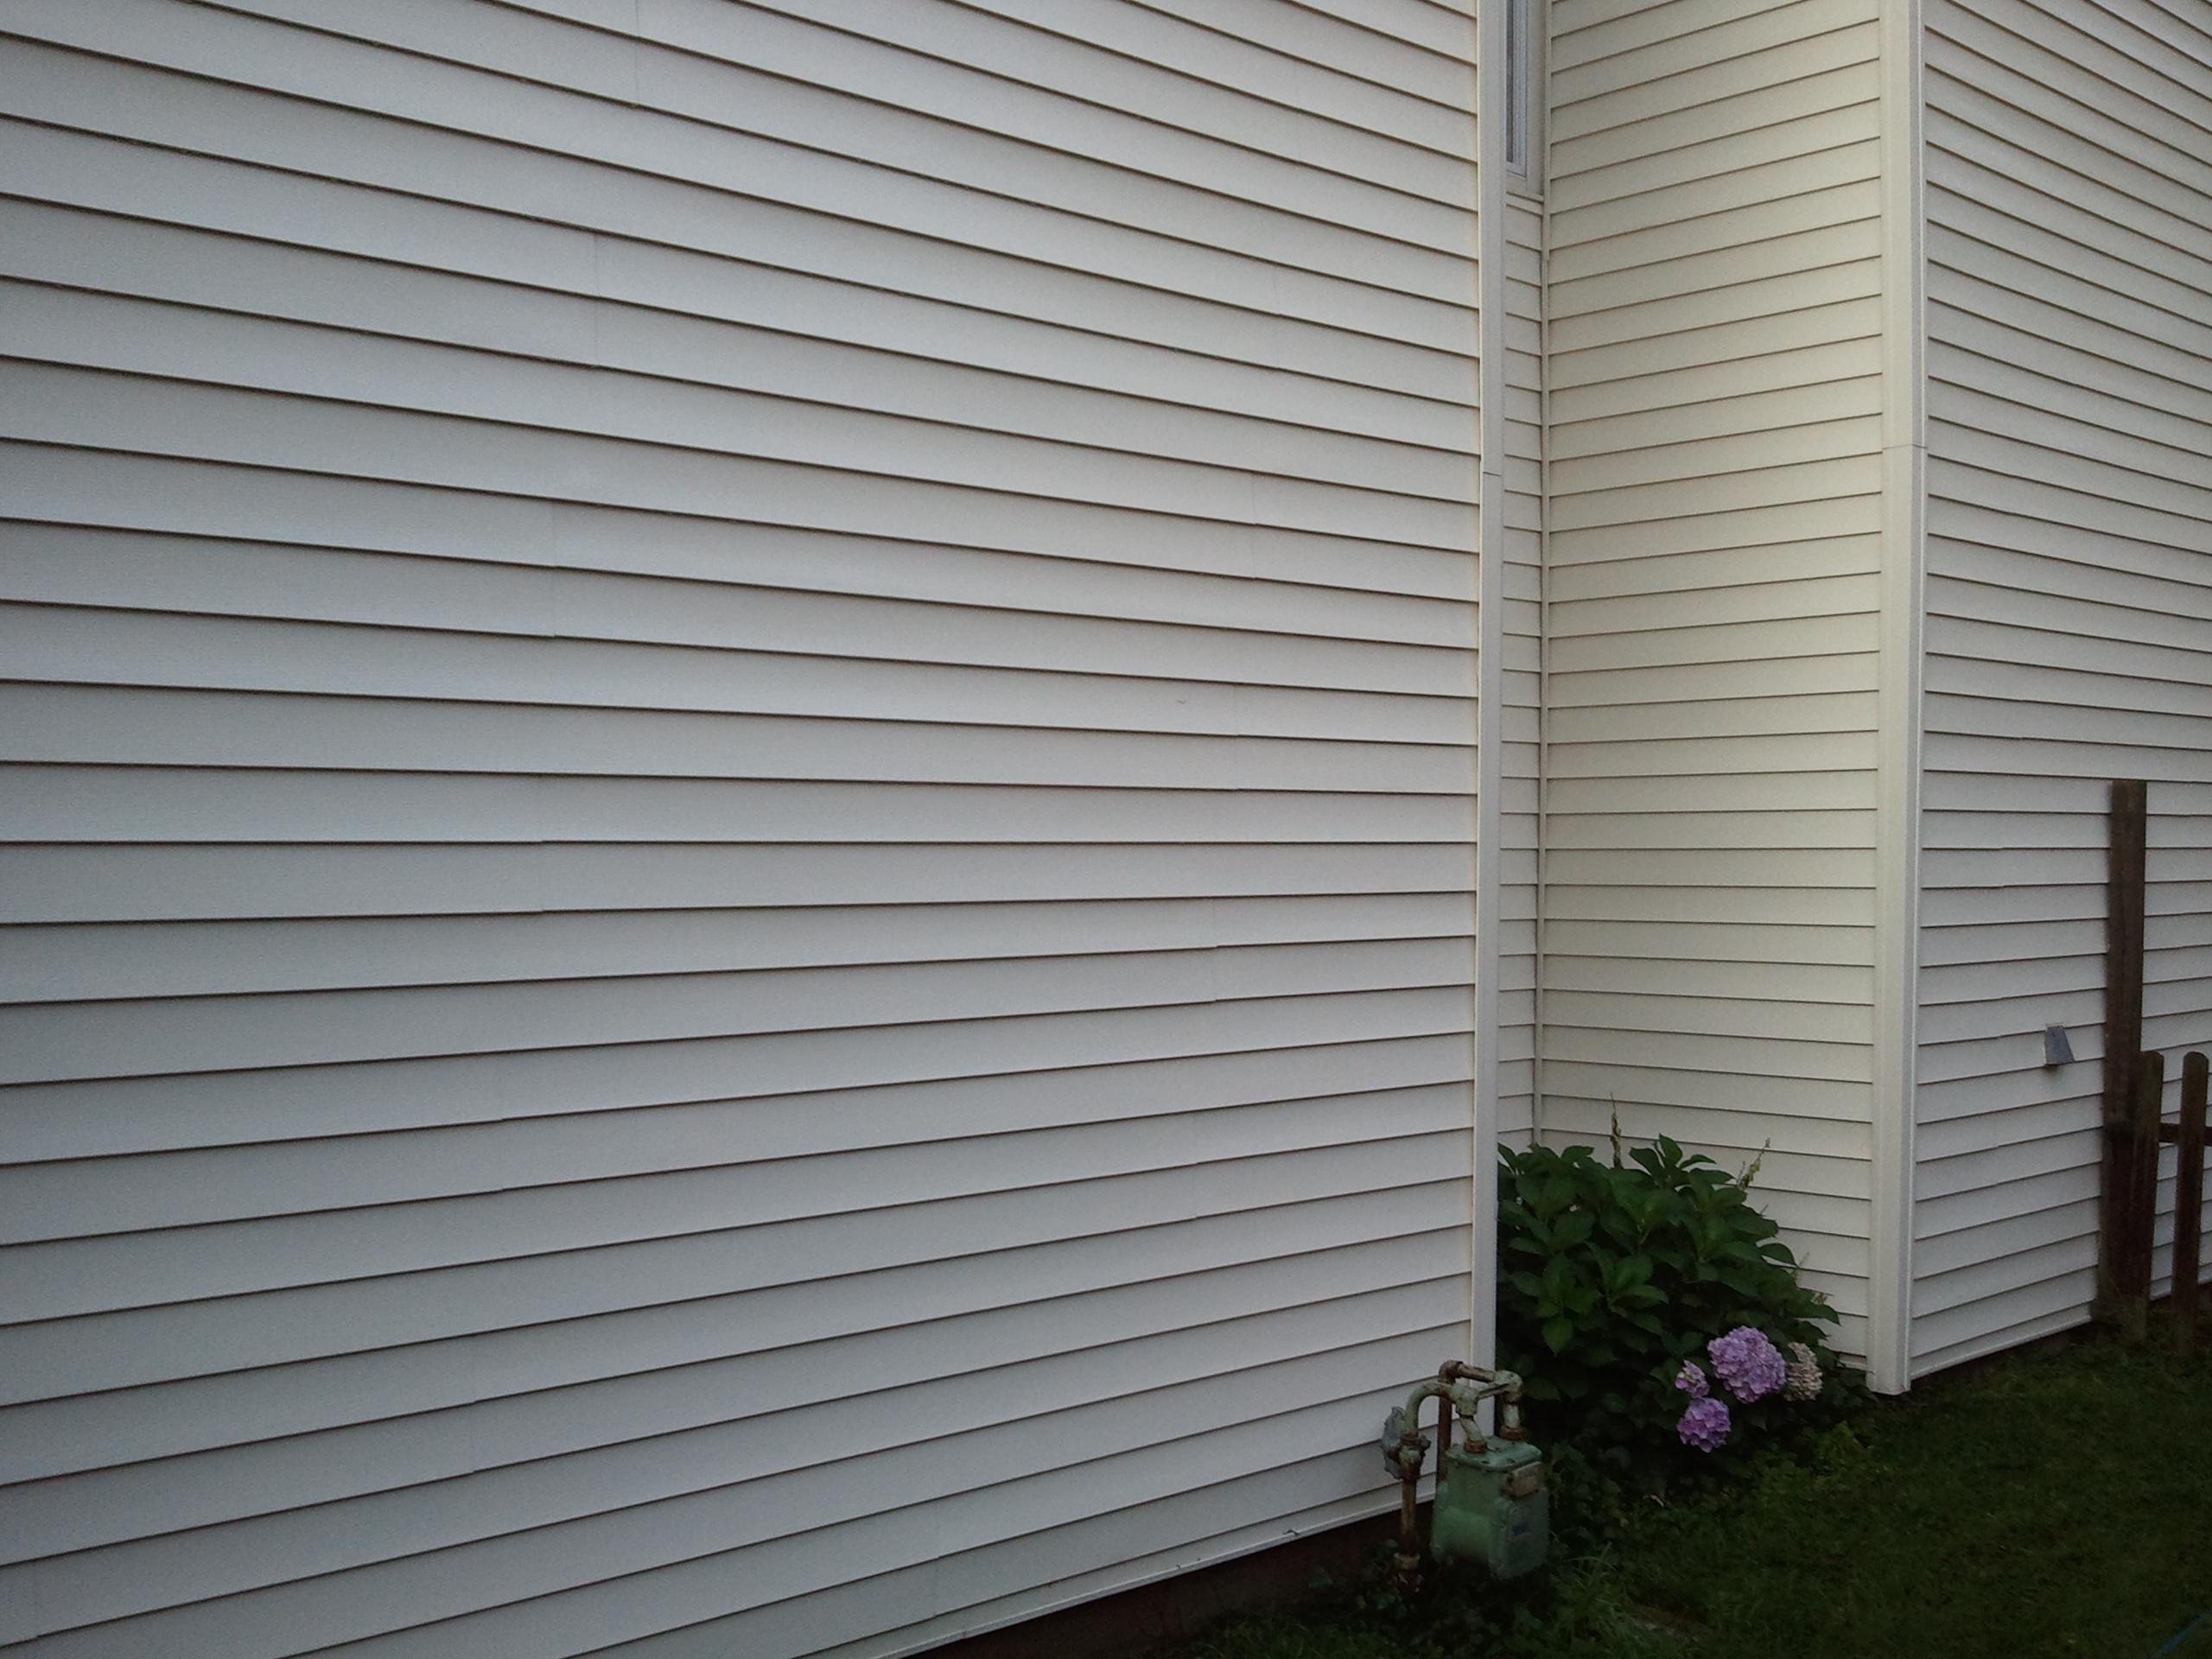 Vinyl Siding Cleaning Lexington Ky Pressure Washing